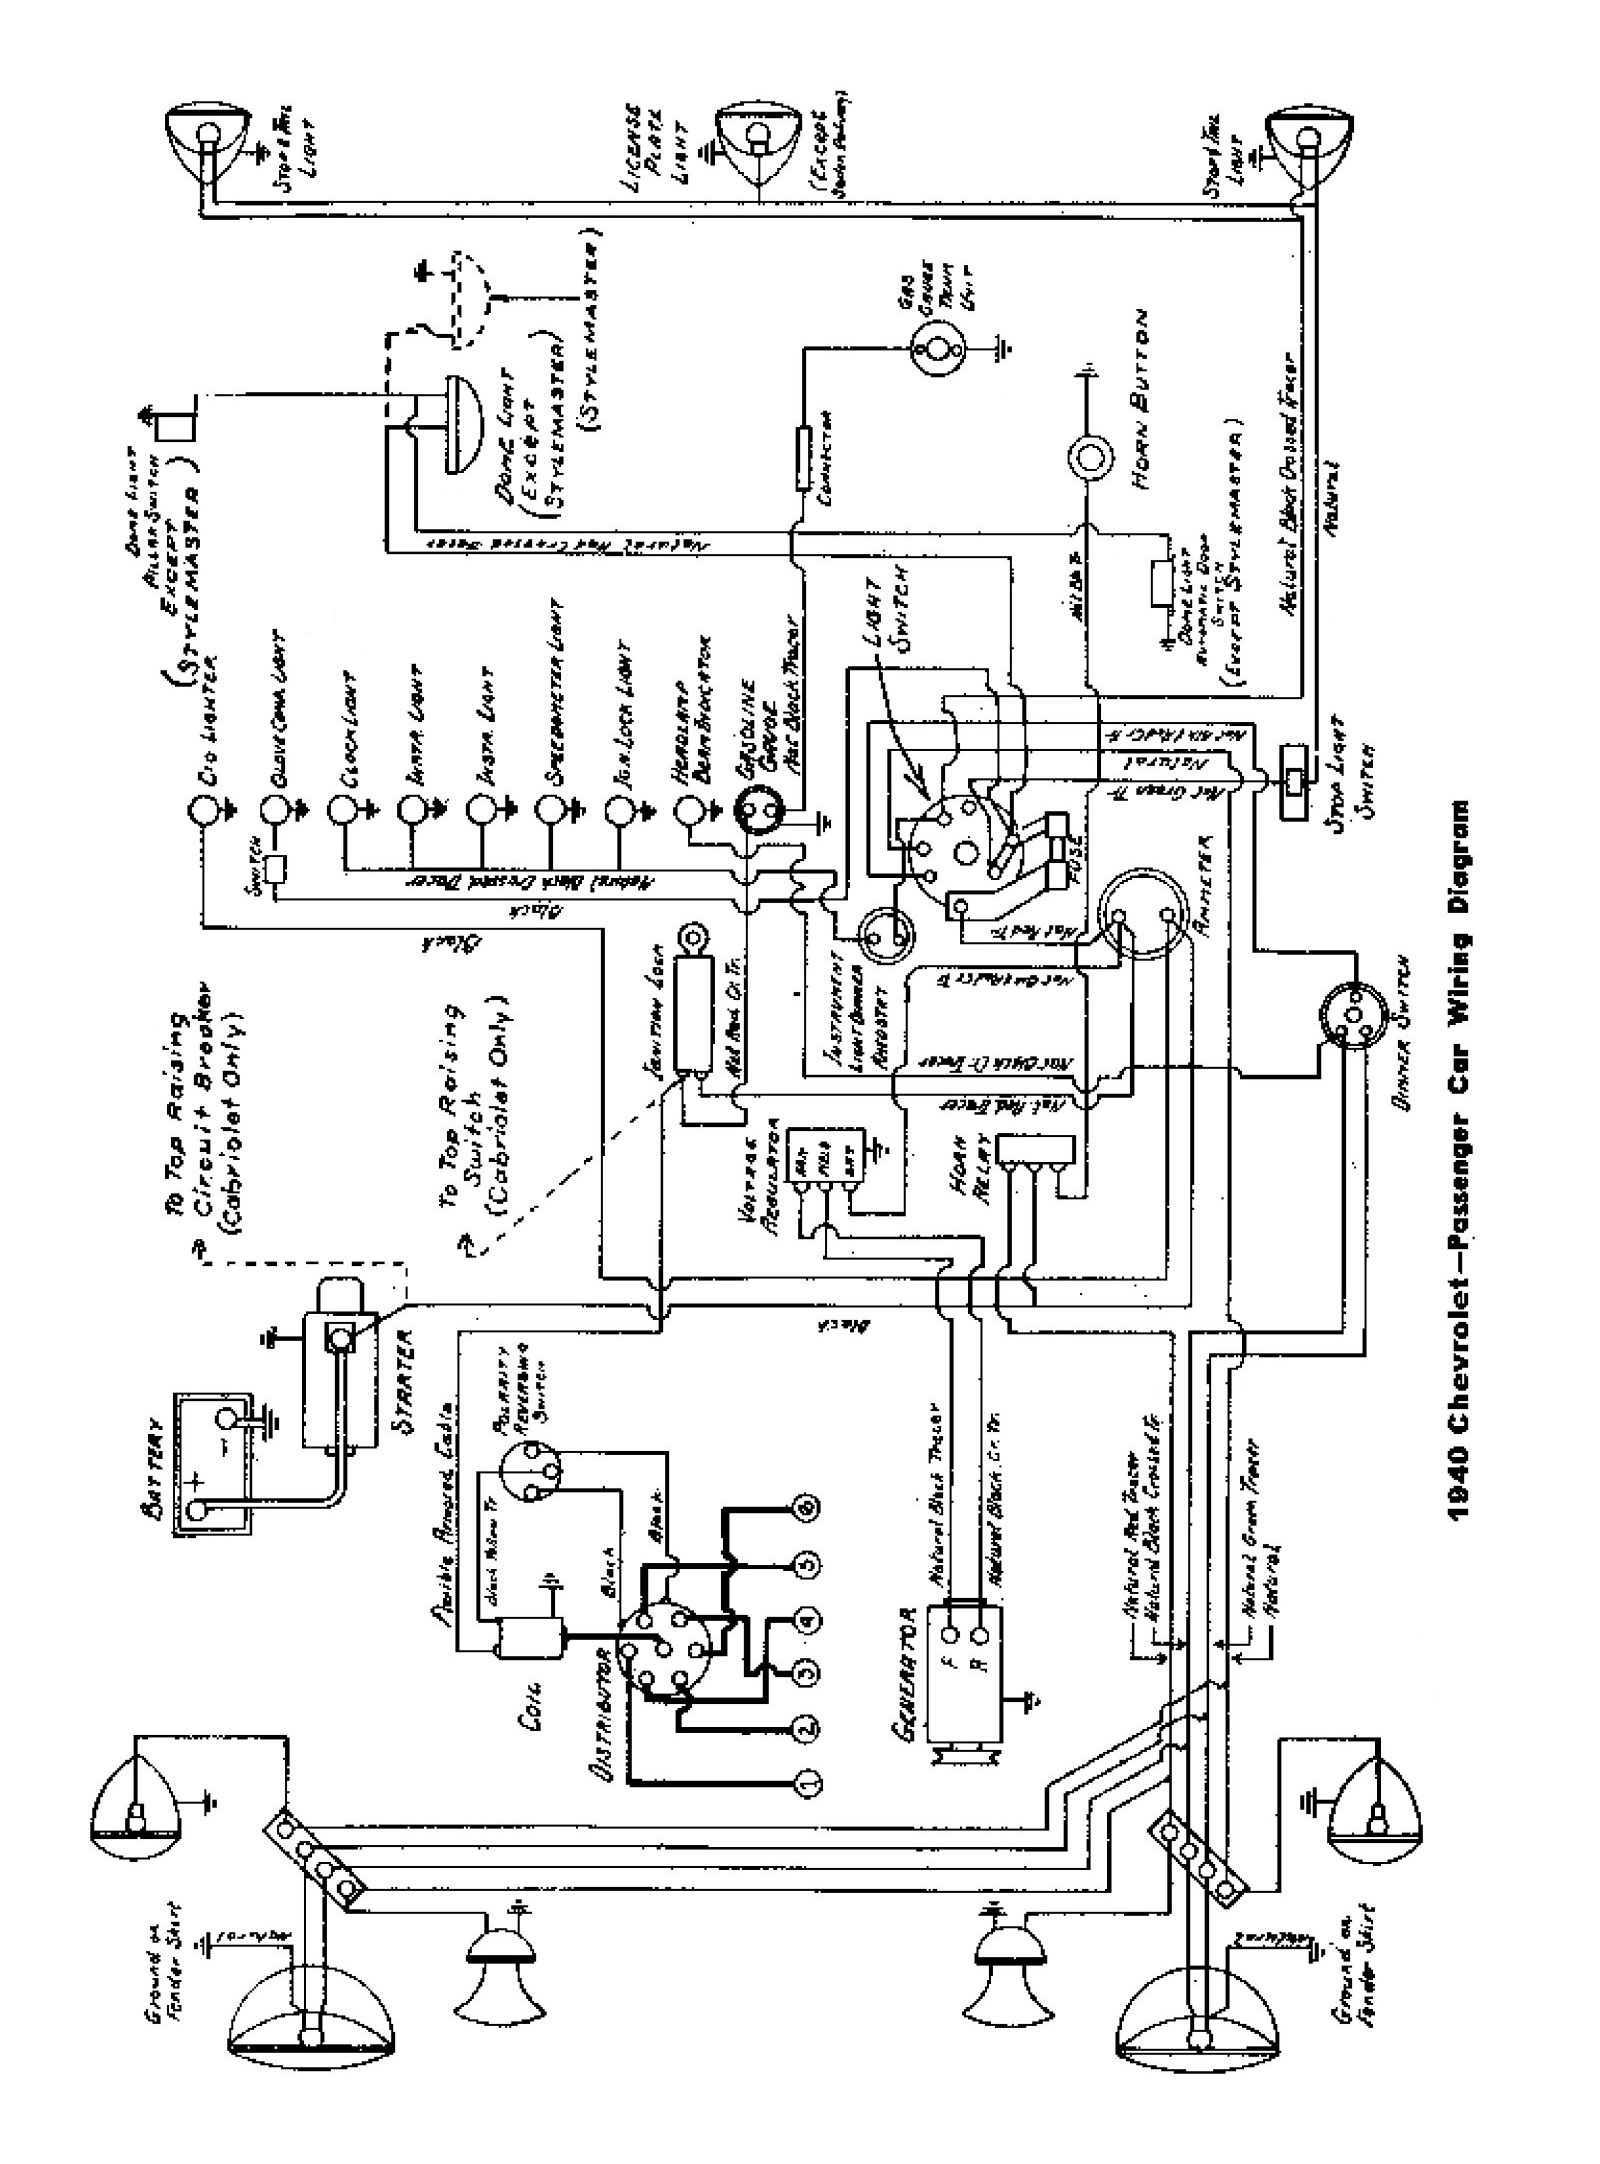 40car freightliner radio wiring diagram freightliner radio wiring international truck radio wiring harness at suagrazia.org